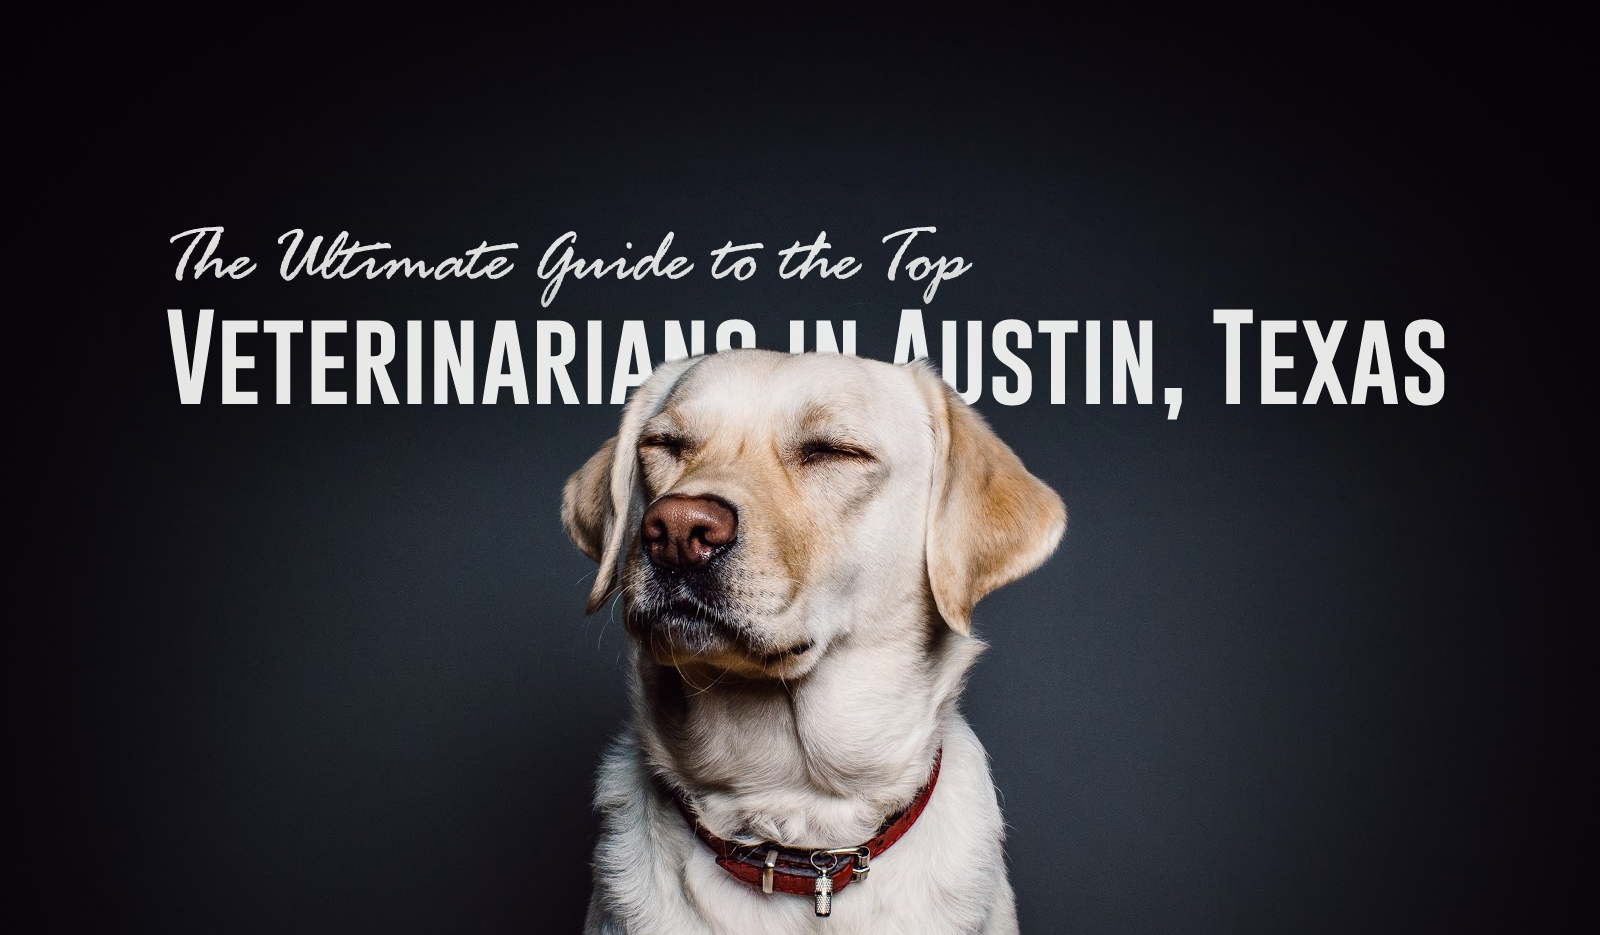 The Ultimate Guide to the Top Veterinarians in Austin, Texas